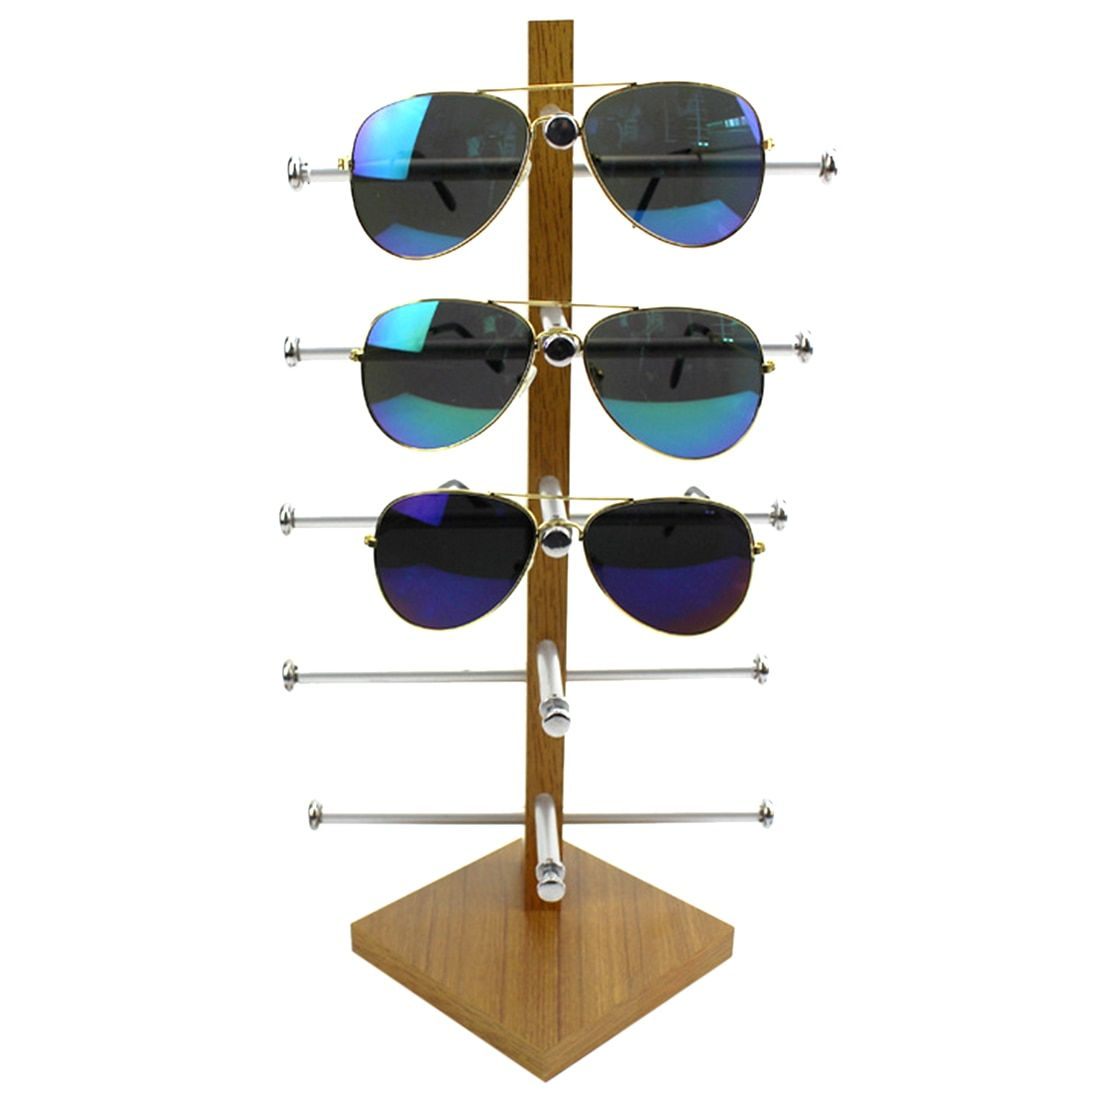 Essencedelight Display Stand Box Protective Case for Eyeglasses Sunglasses Ornament Cases Holder Jewelry Desktop Organizer